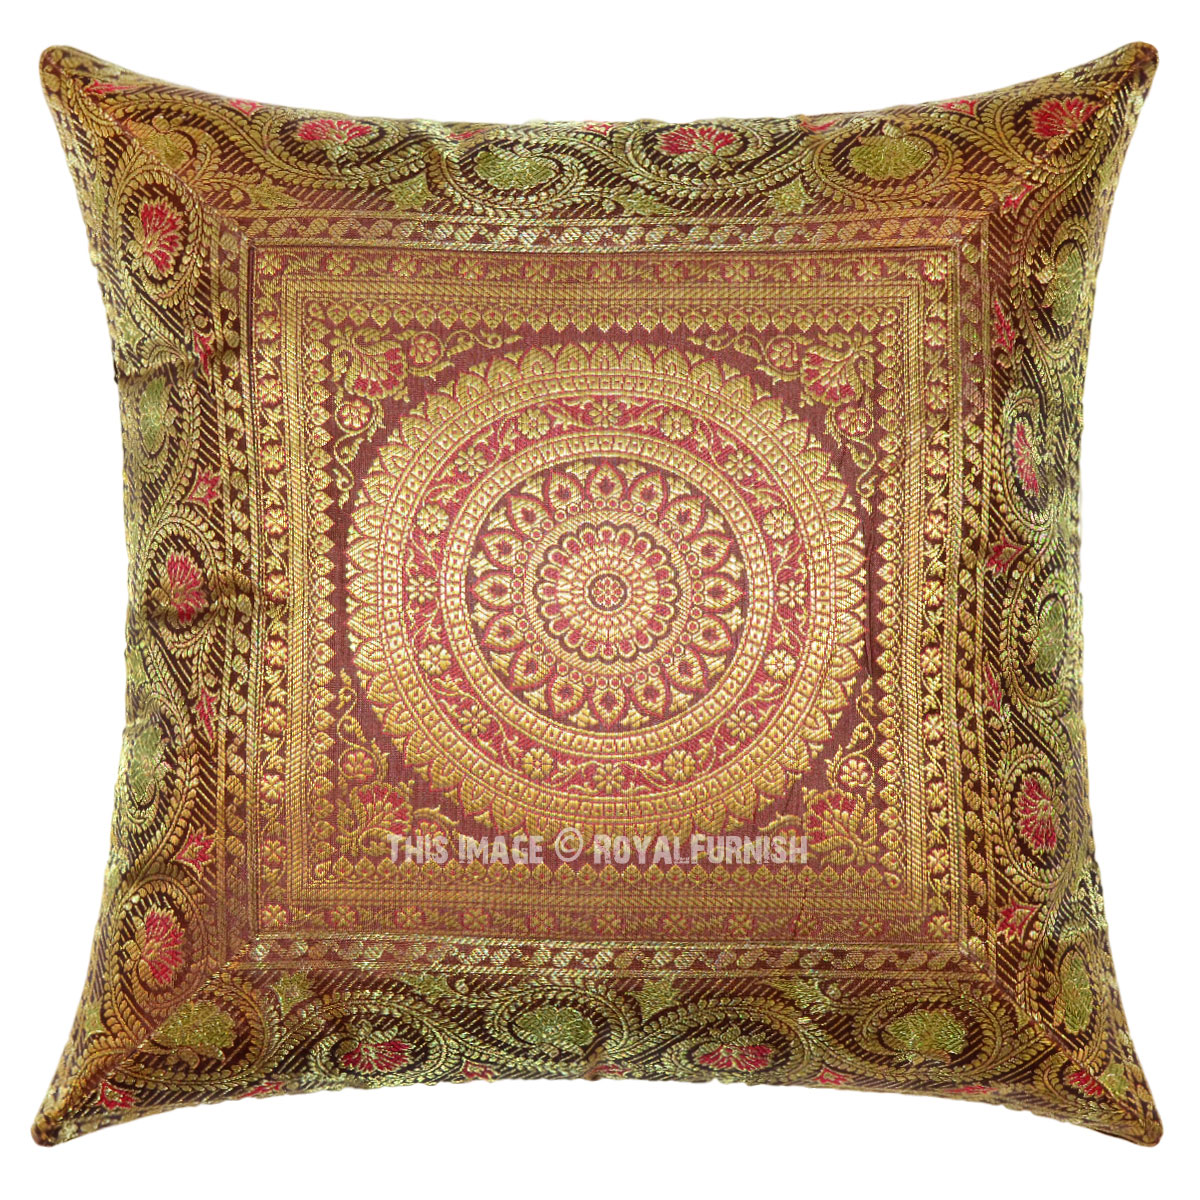 brown shimmer flowers medallion circle unique decorative silk pillow cover 16x16. Black Bedroom Furniture Sets. Home Design Ideas